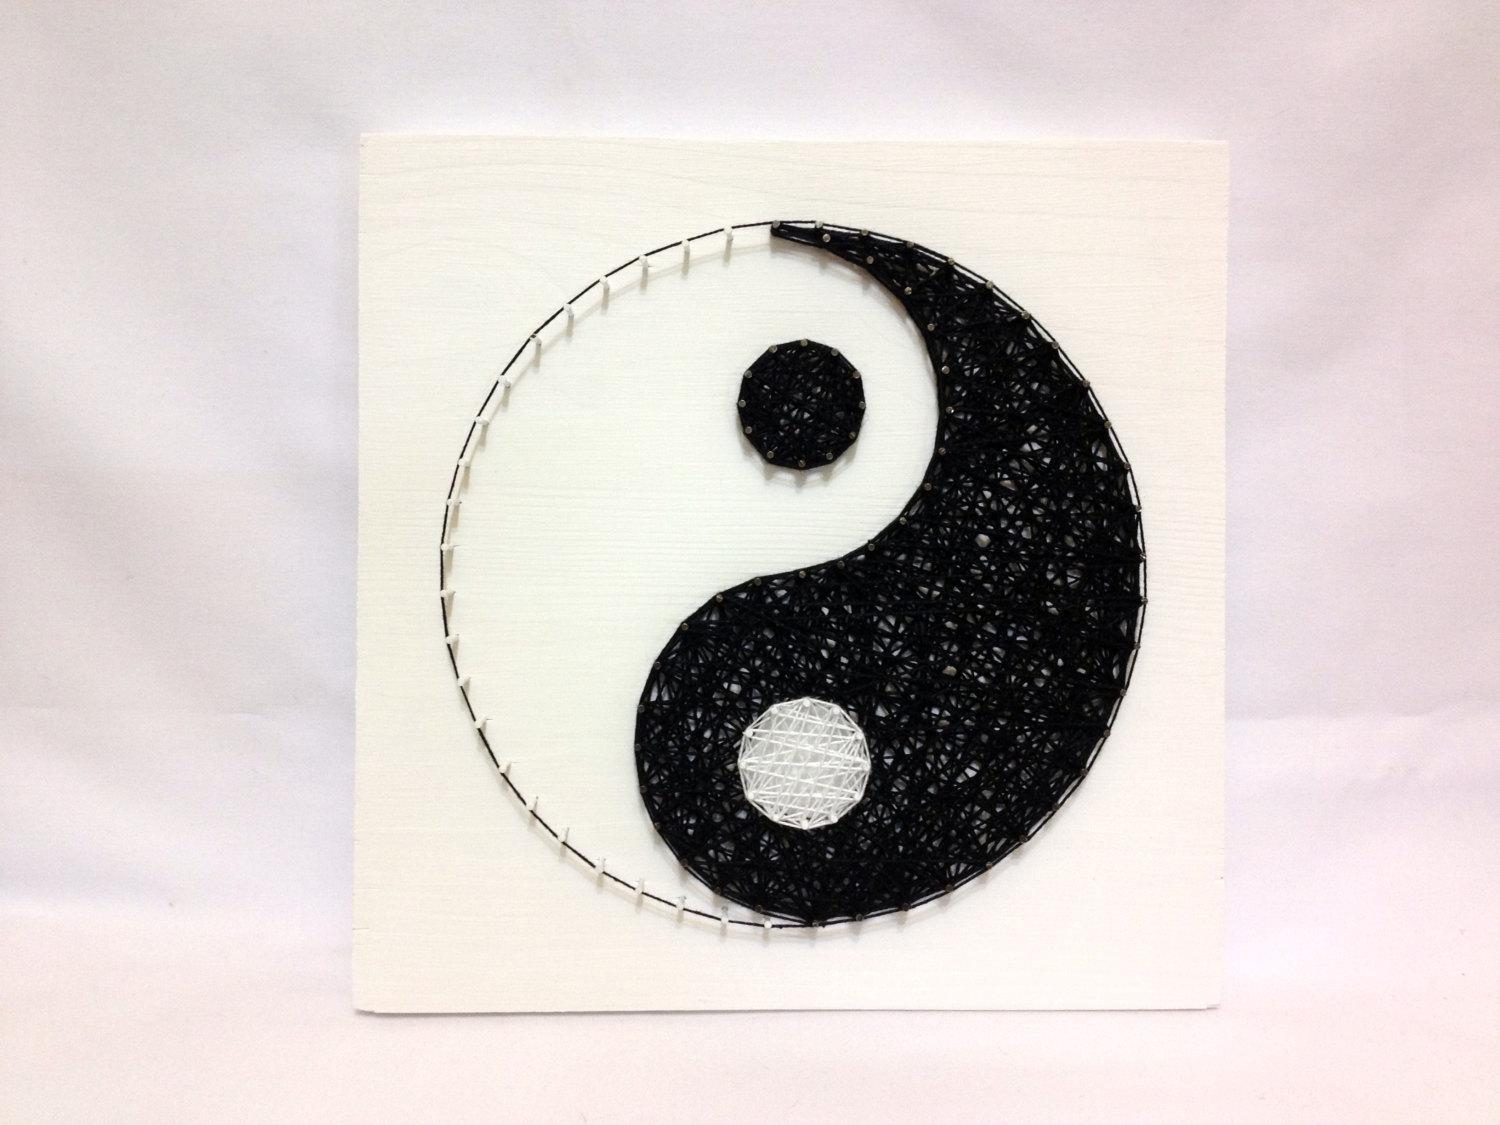 String Art Yin Yang Sign Wall Art Yin Yang Home Decor Black Intended For Yin Yang Wall Art (View 16 of 20)